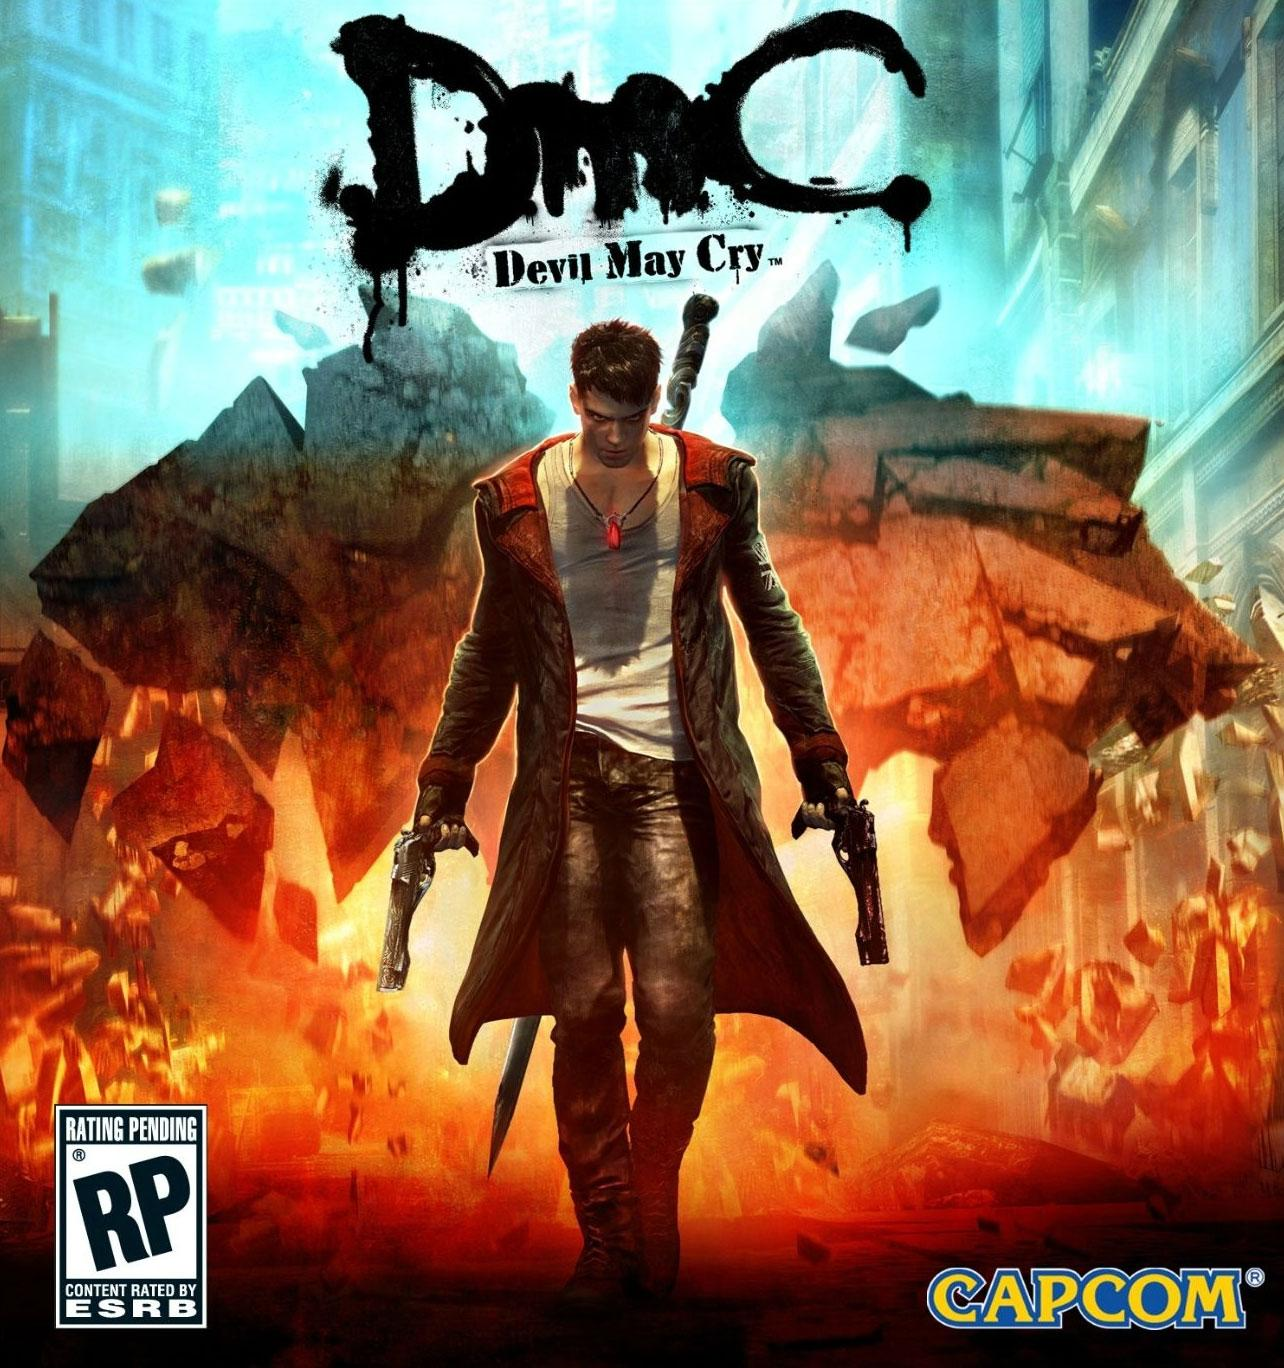 Devil May Cry 5 PC Game Free Full Version Download